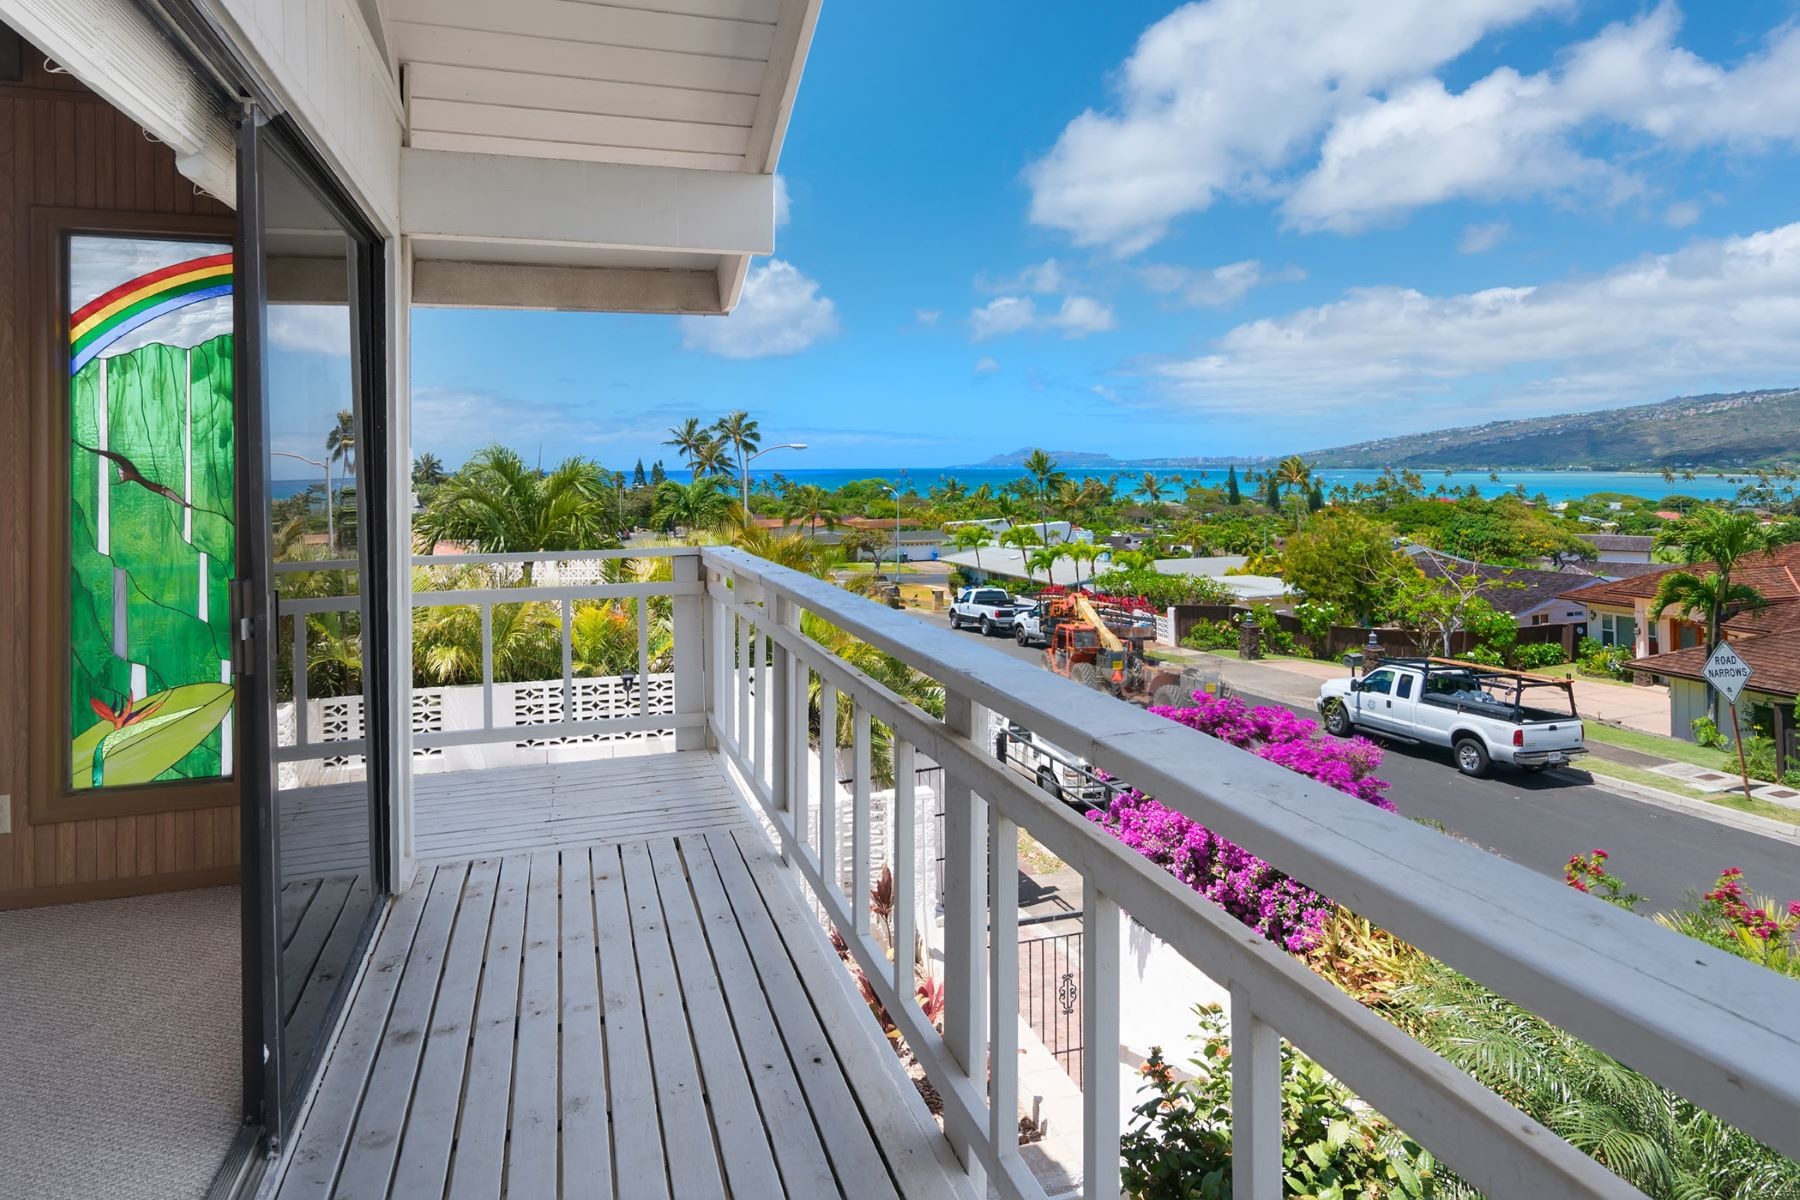 Additional photo for property listing at Views from Koko Kai 111 Nawiliwili Street Honolulu, Hawaii 96825 United States